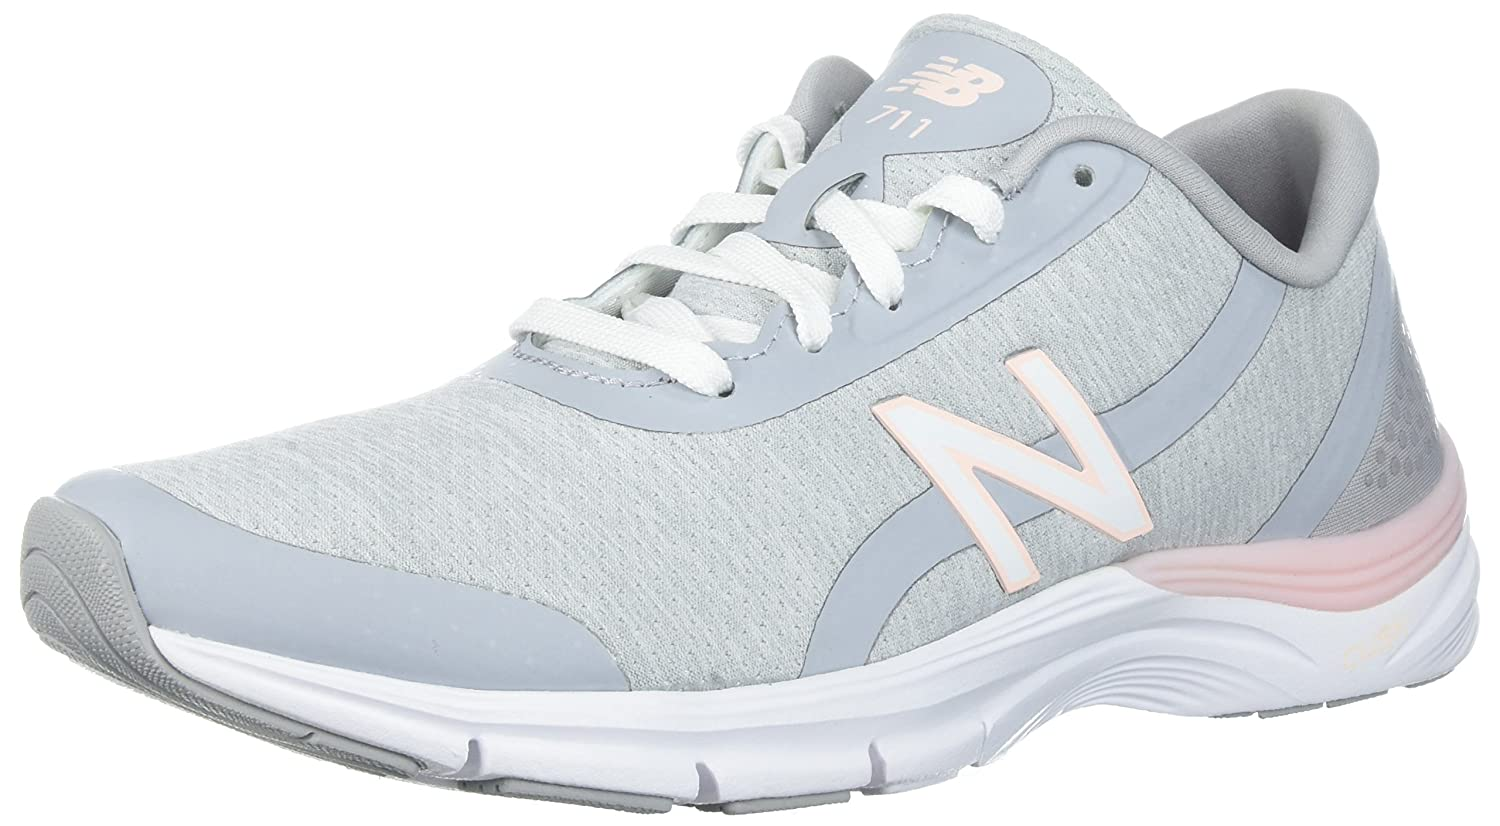 New Balance Women's 711v3 Cross Trainer B06XS2PZ4V 8 B(M) US|White